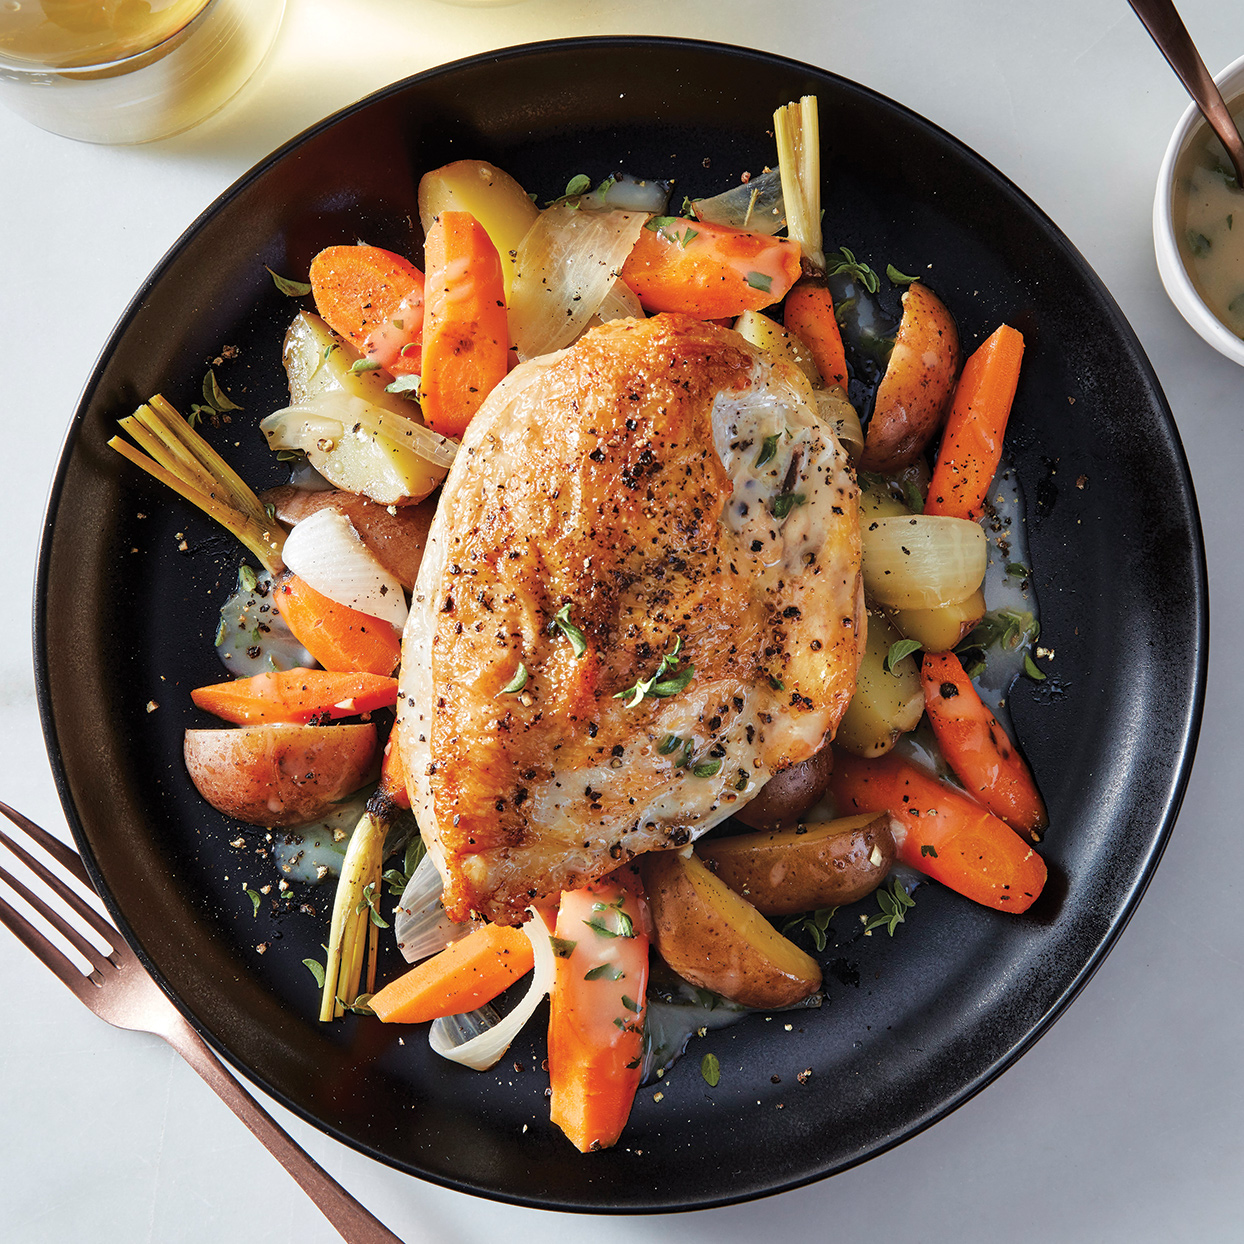 Slow-Cooker Chicken with Potatoes, Carrots & Herb Sauce